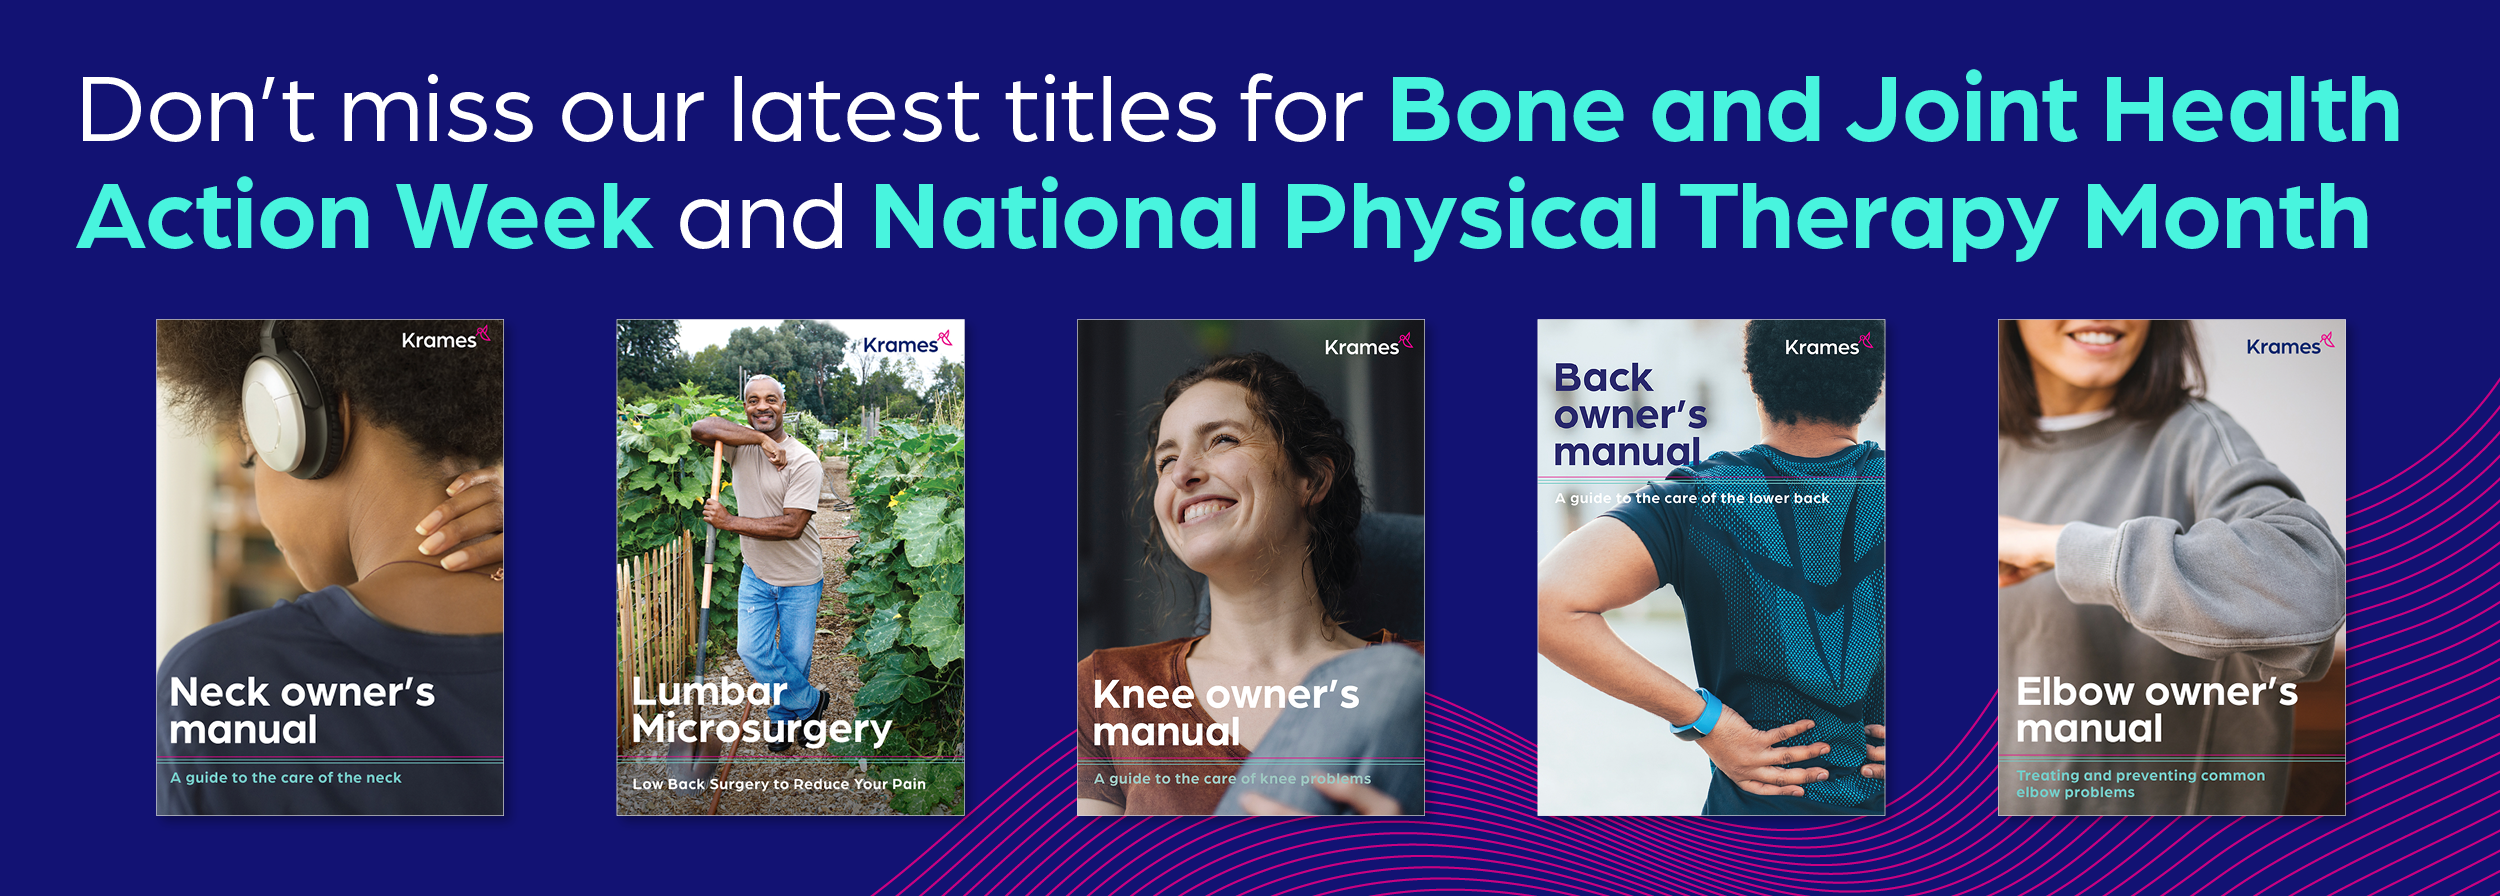 Bone and Joint Health/Physical Therapy Month